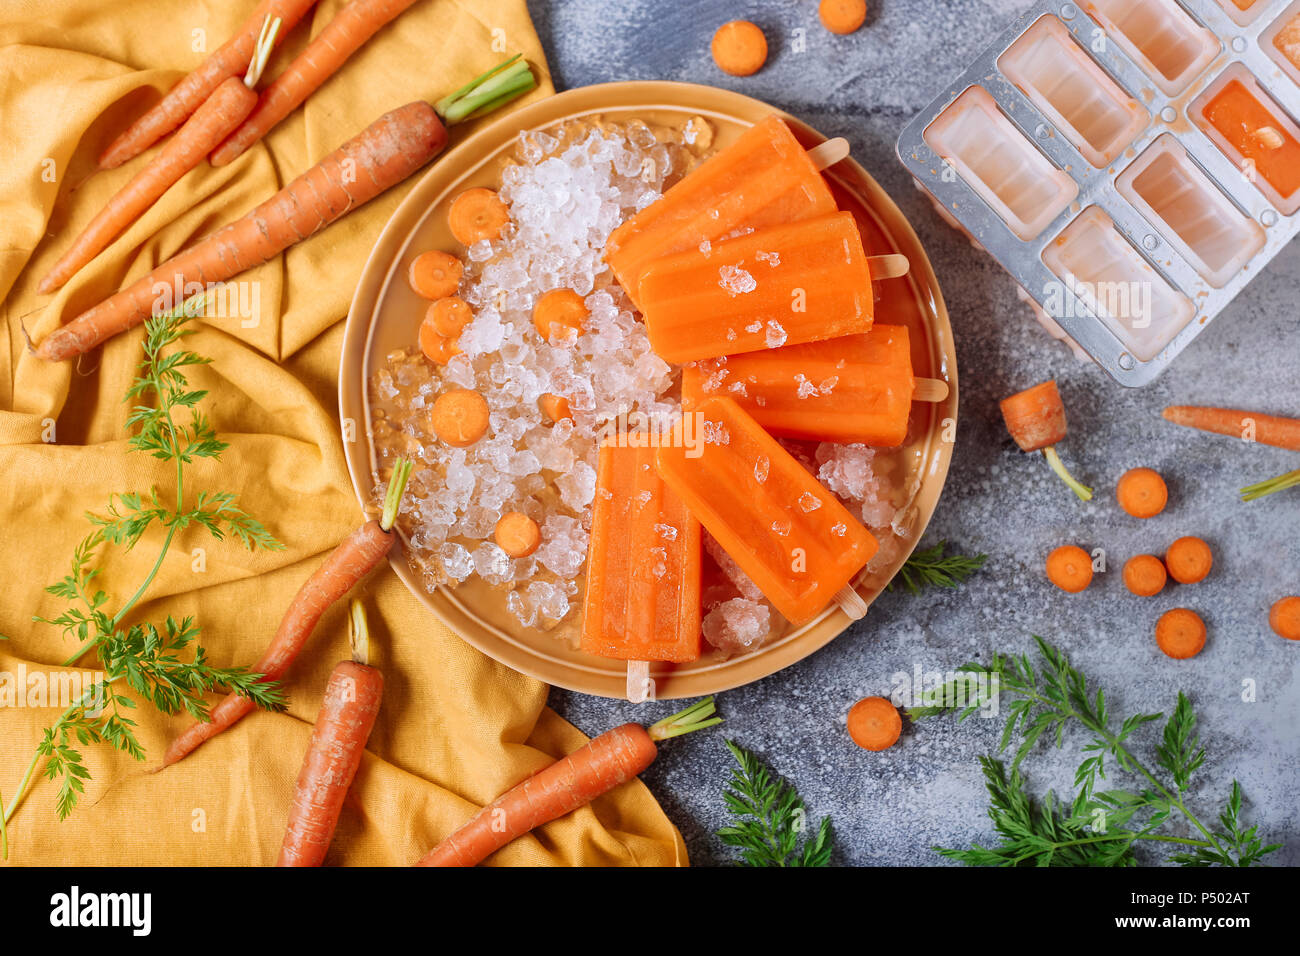 Carrot ice lollies - Stock Image